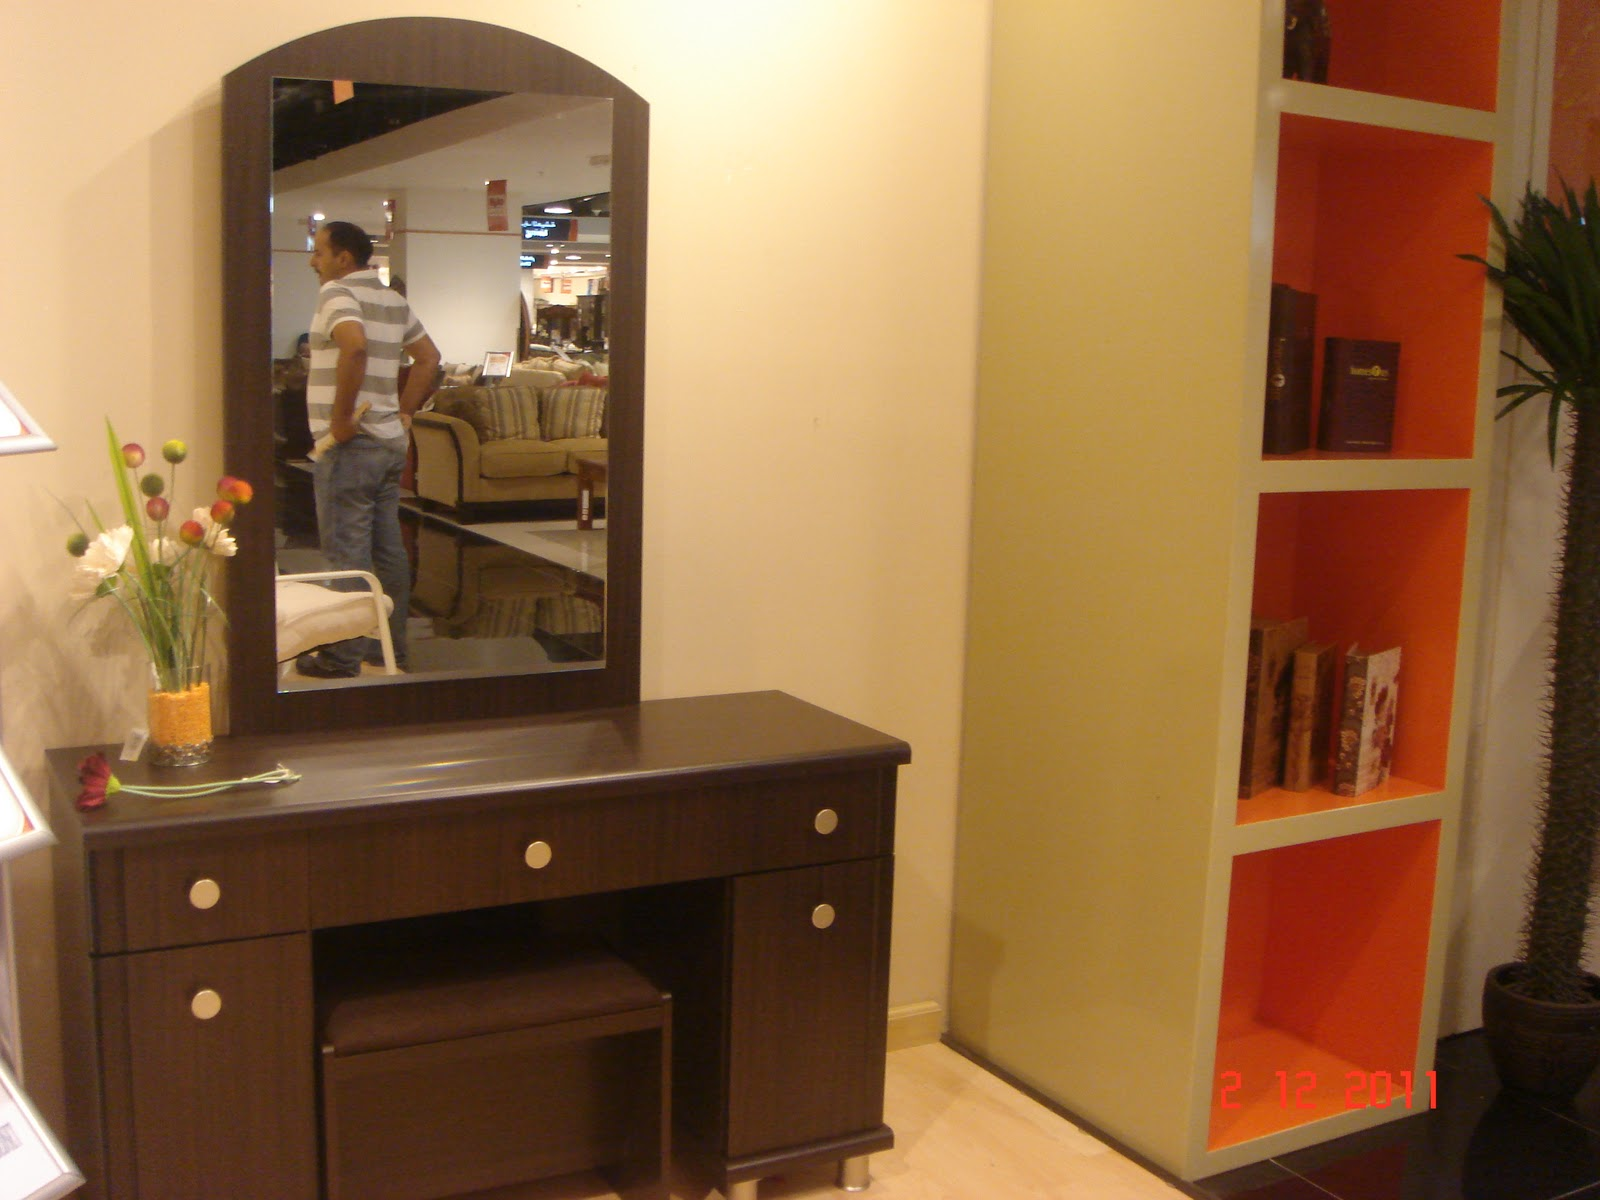 Dressing table designs - Dsc07385